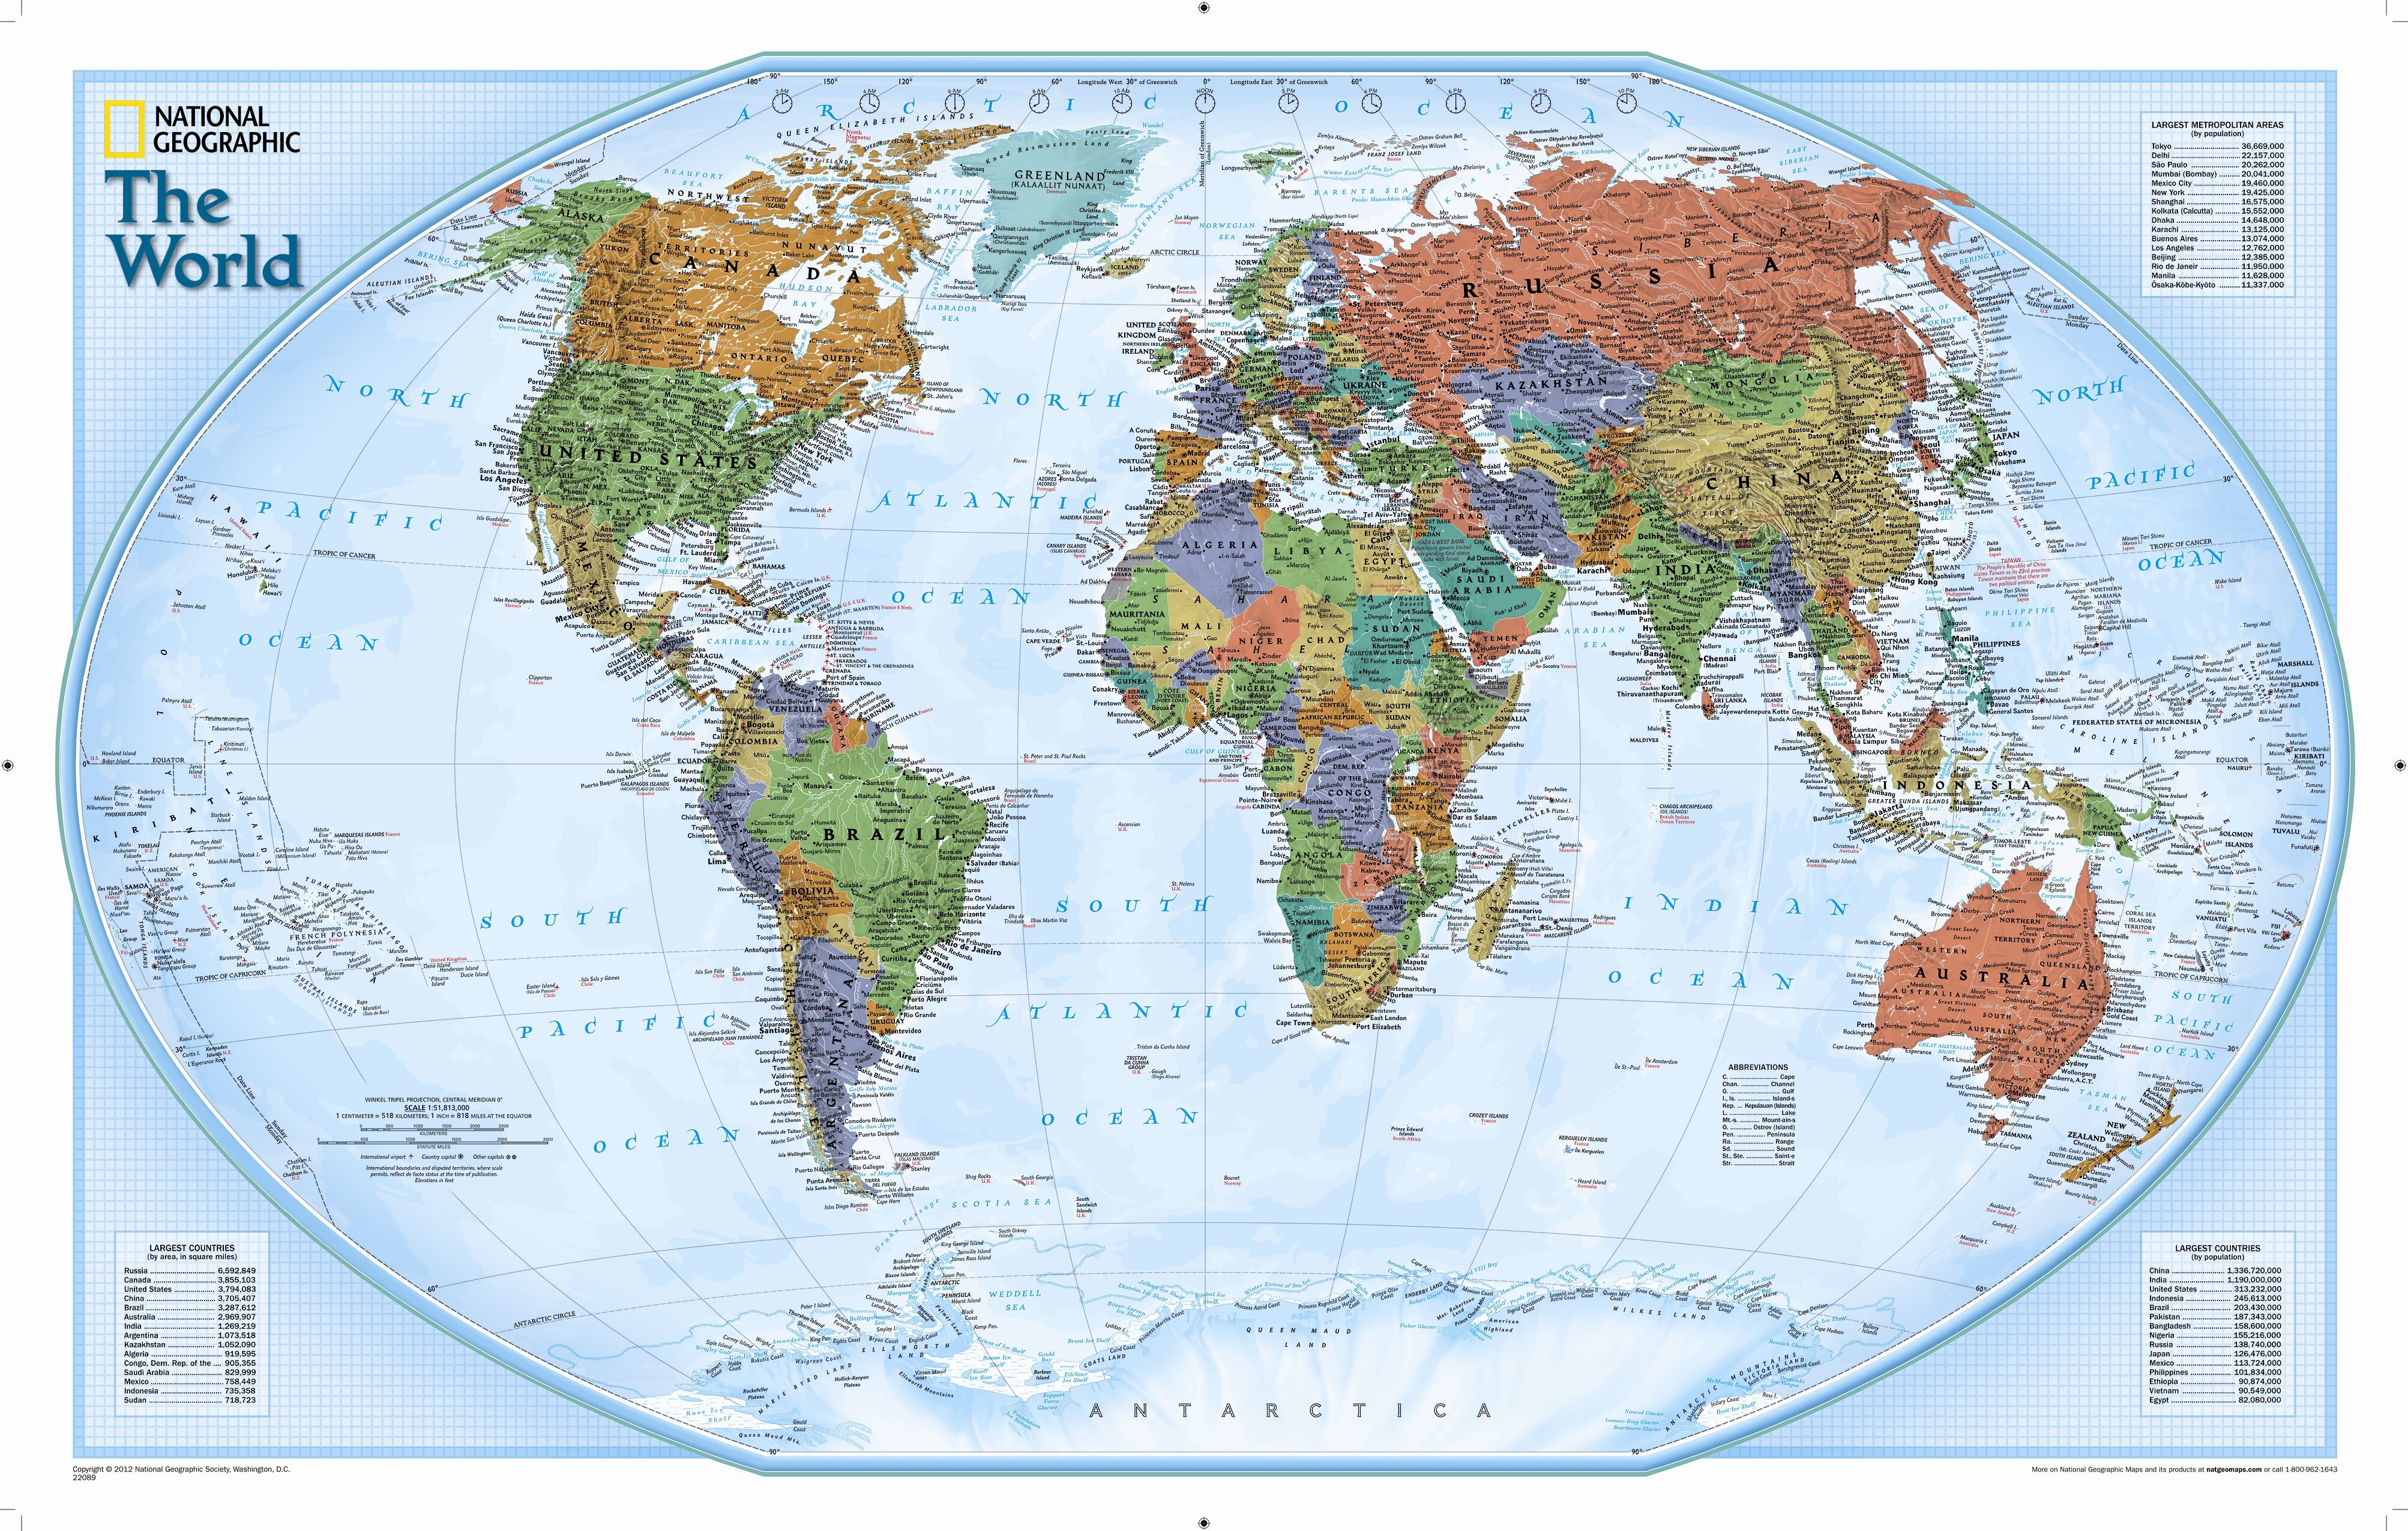 National geographic maps world explorer wall map reviews wayfair gumiabroncs Image collections